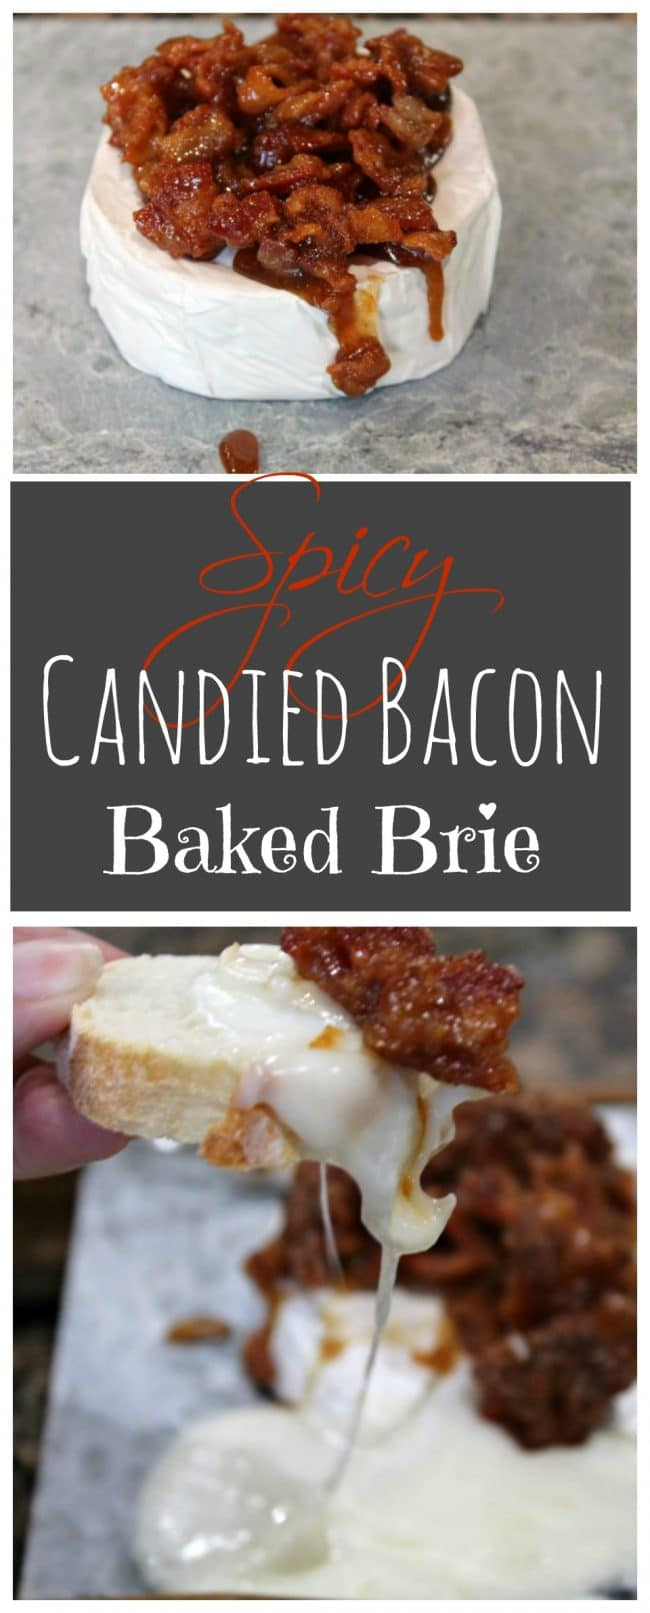 Spicy Candied Bacon Baked Brie - Foody Schmoody Blog | Foody Schmoody ...